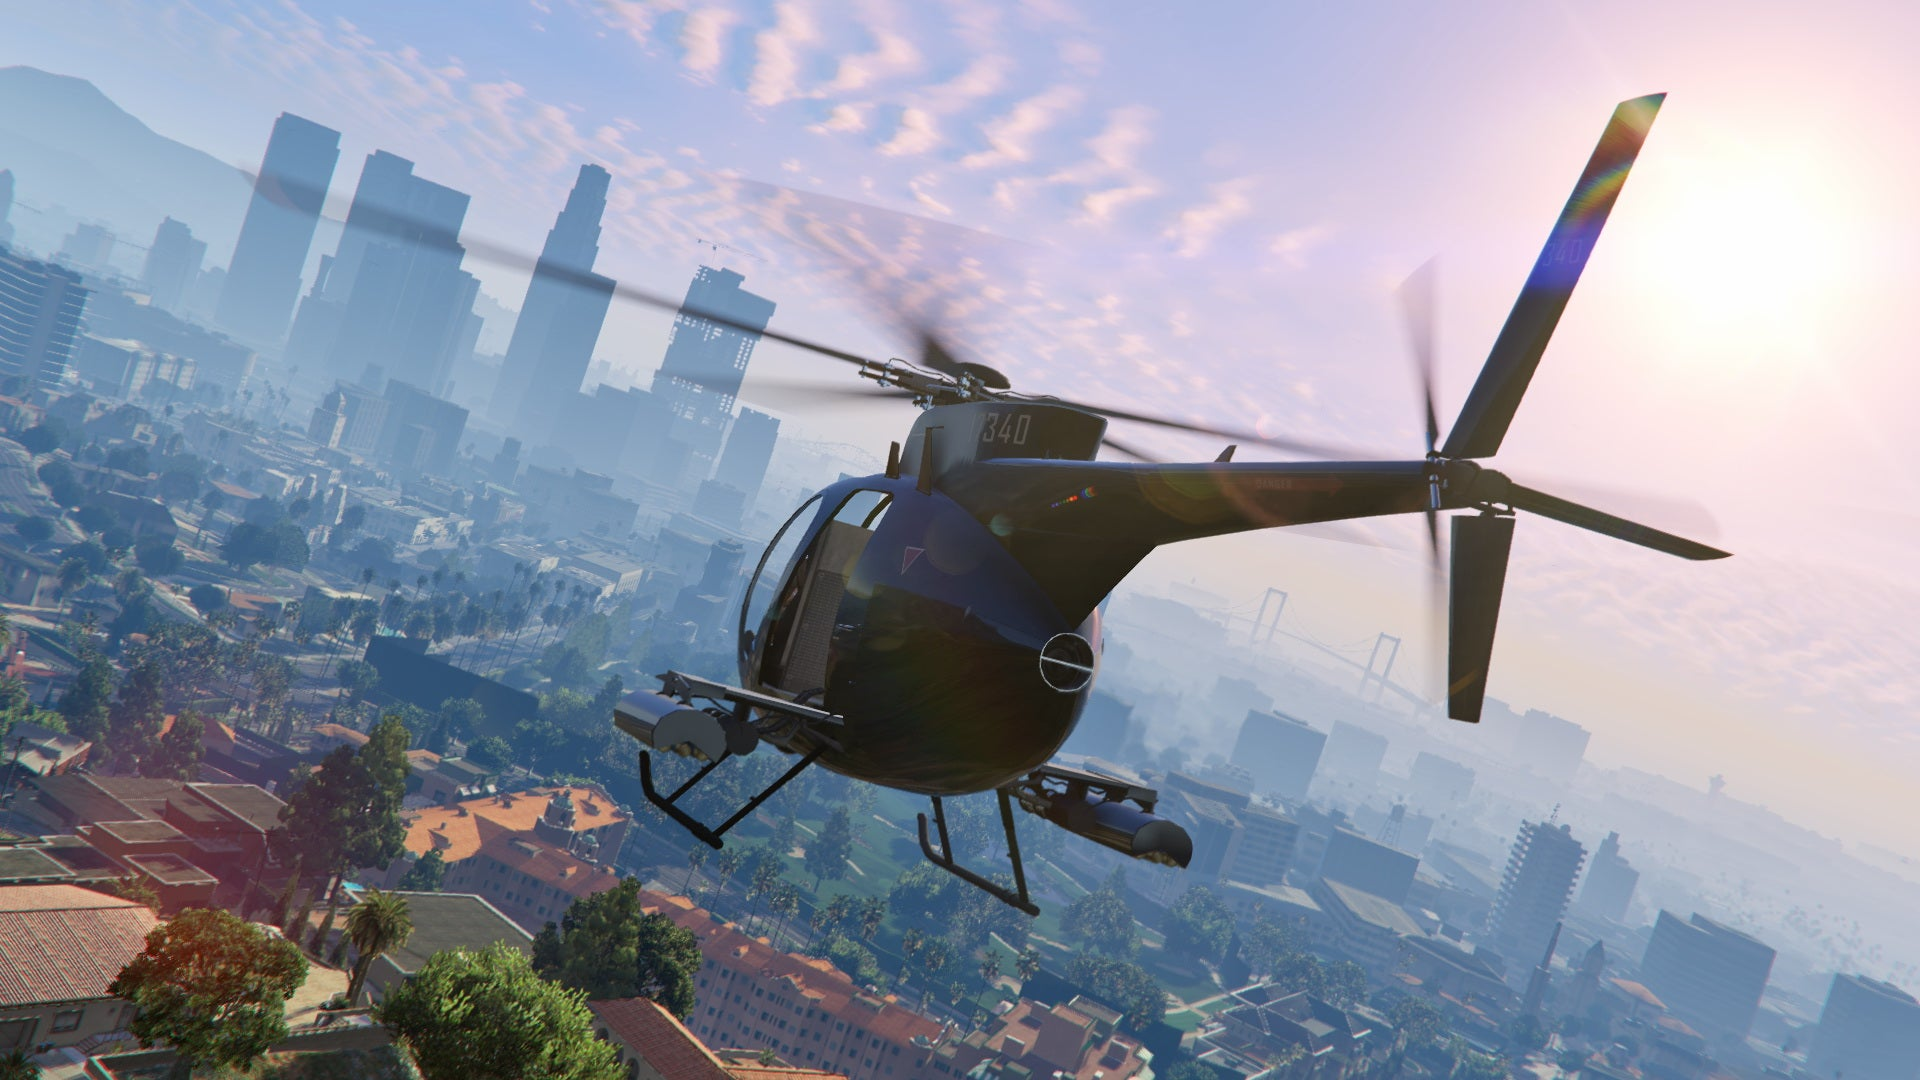 New-Gen Grand Theft Auto V Will Be Out In November, With More Stuff